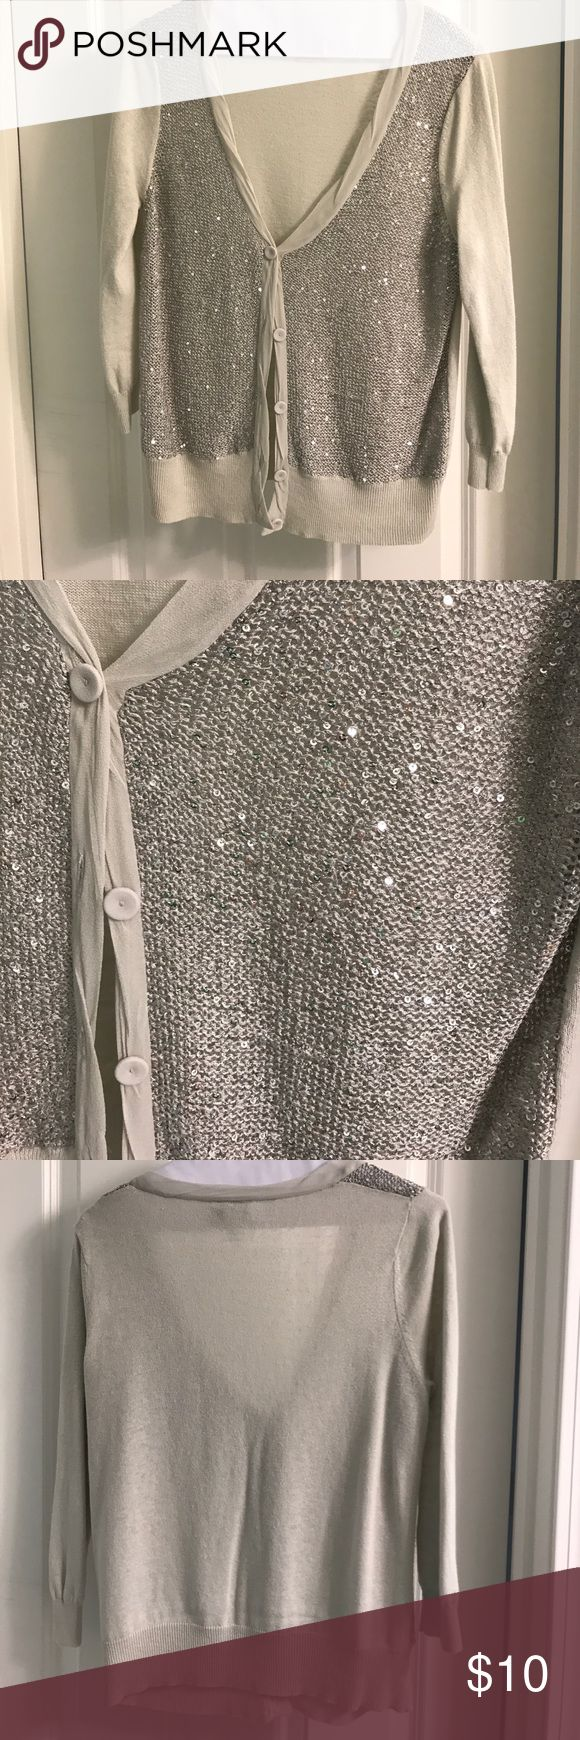 Sequin Silver Cardigan Loft silver/light grey cardigan. Size Small.  Small sequins on front.  Freshly Dry Cleaned. LOFT Sweaters Cardigans